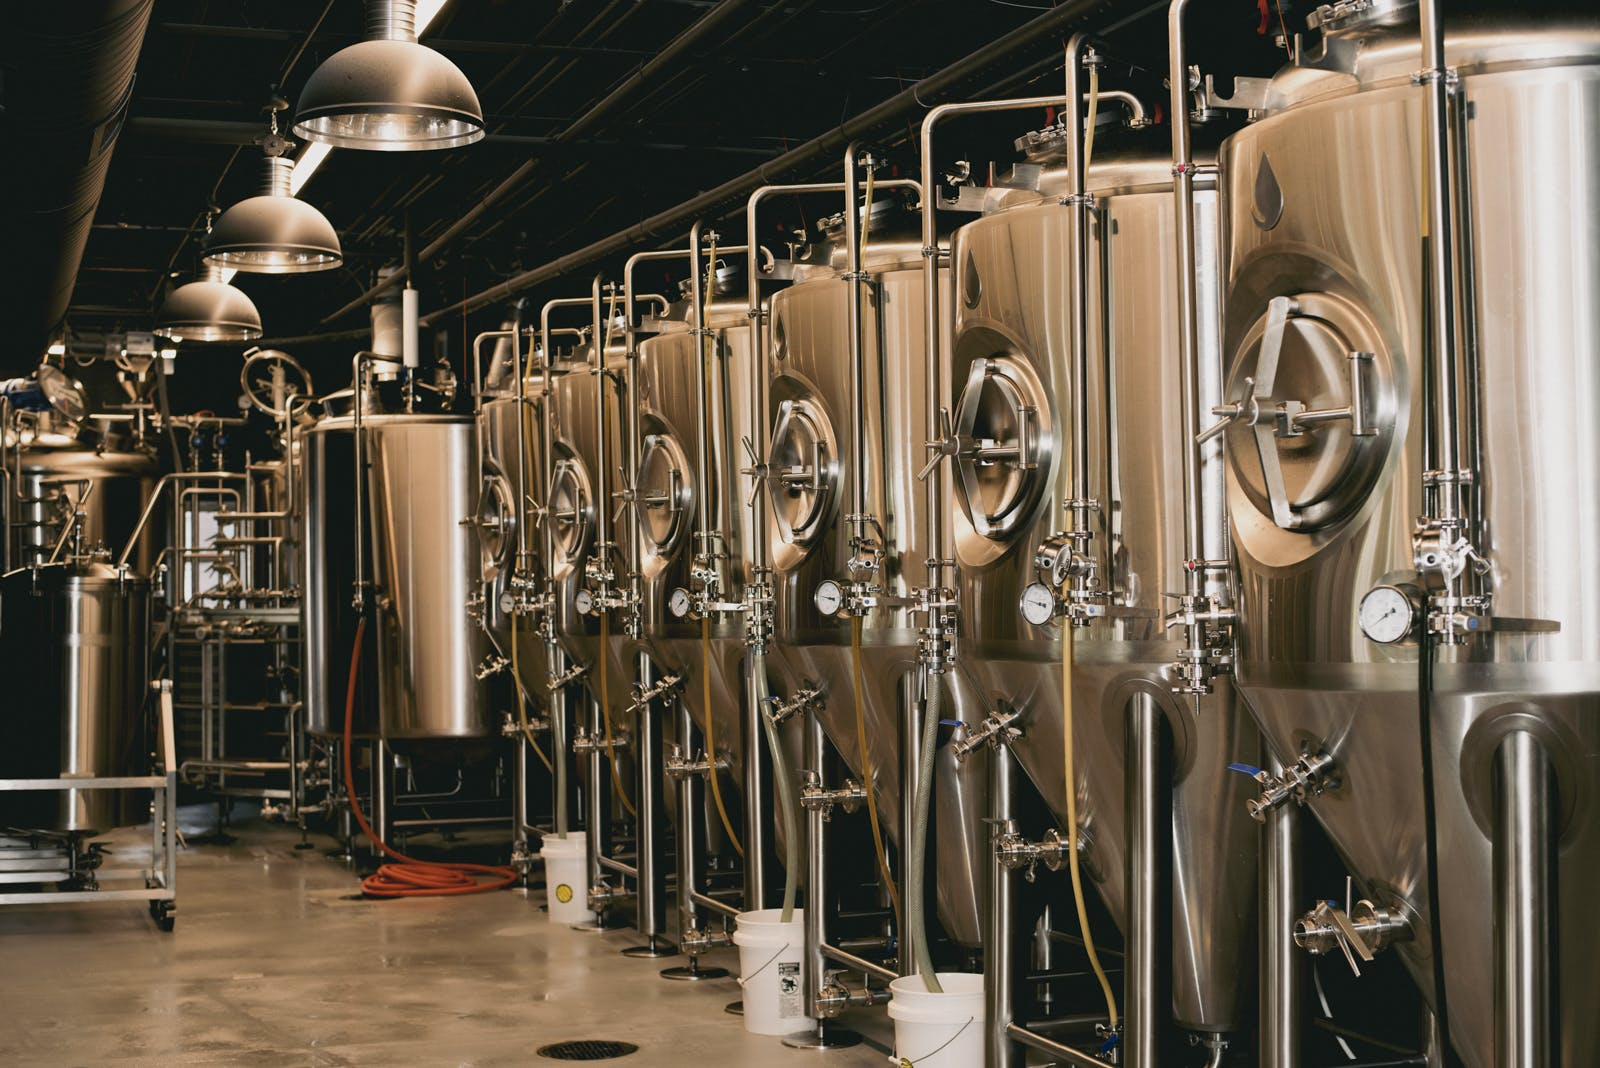 brewhouse and fermenters